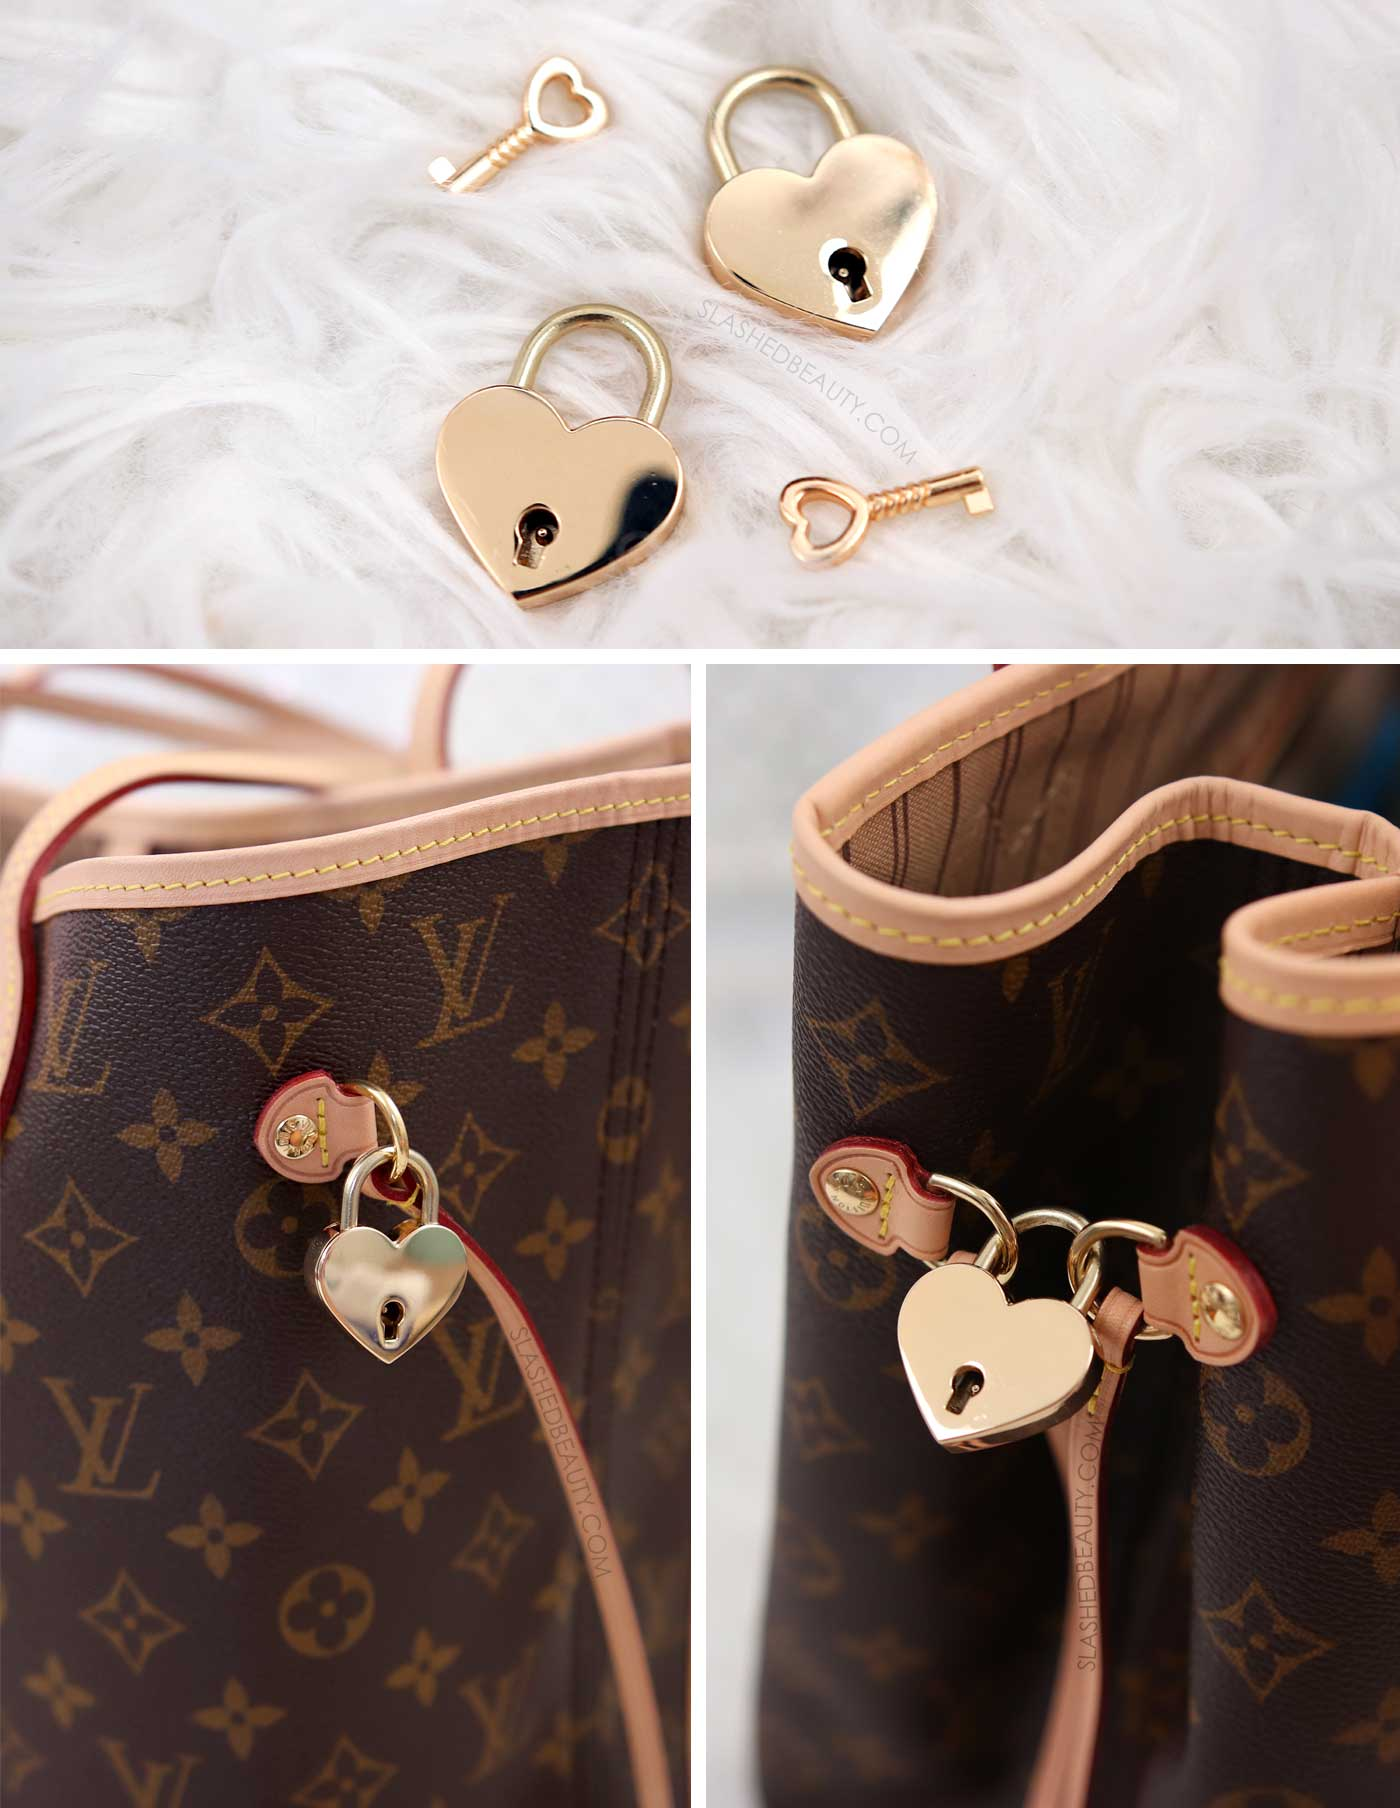 How to keep the Neverfull cinched with mini heart padlocks | 5 Affordable Handbag Accessories for the Louis Vuitton Neverfull | Slashed Beauty